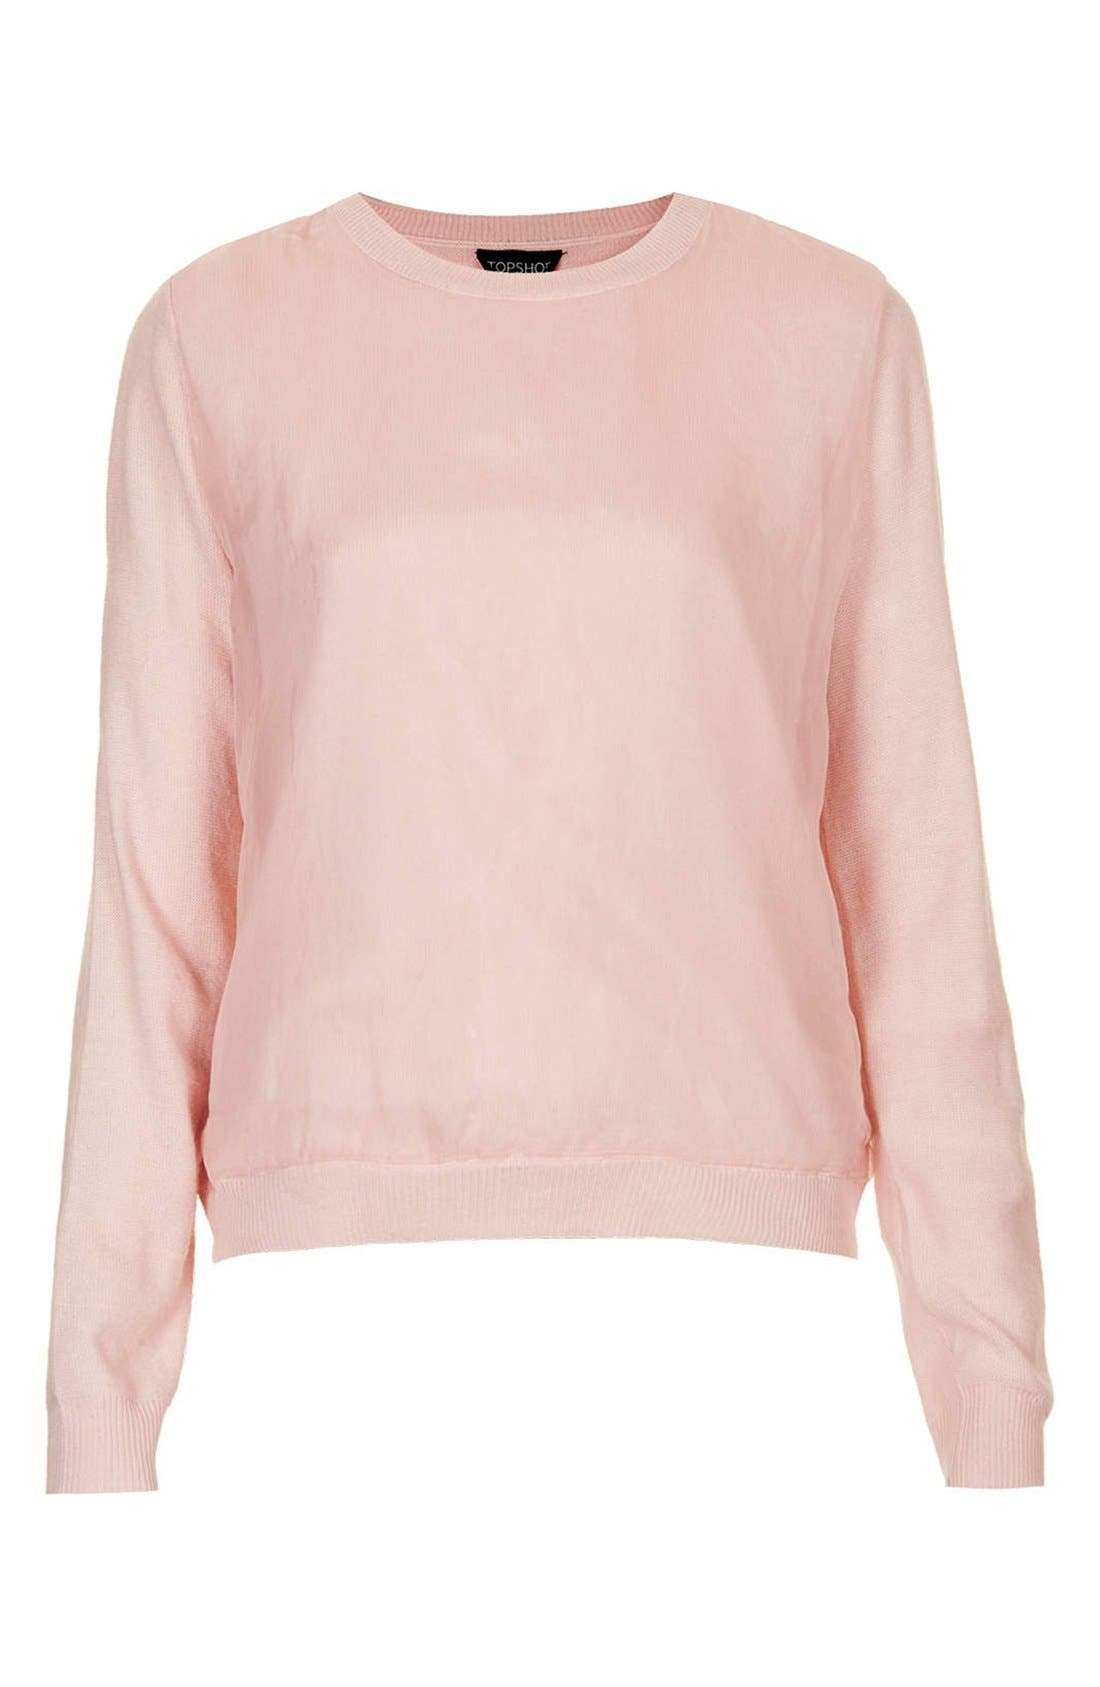 Alternate Image 3  - Topshop Organza Overlay Knit Sweater